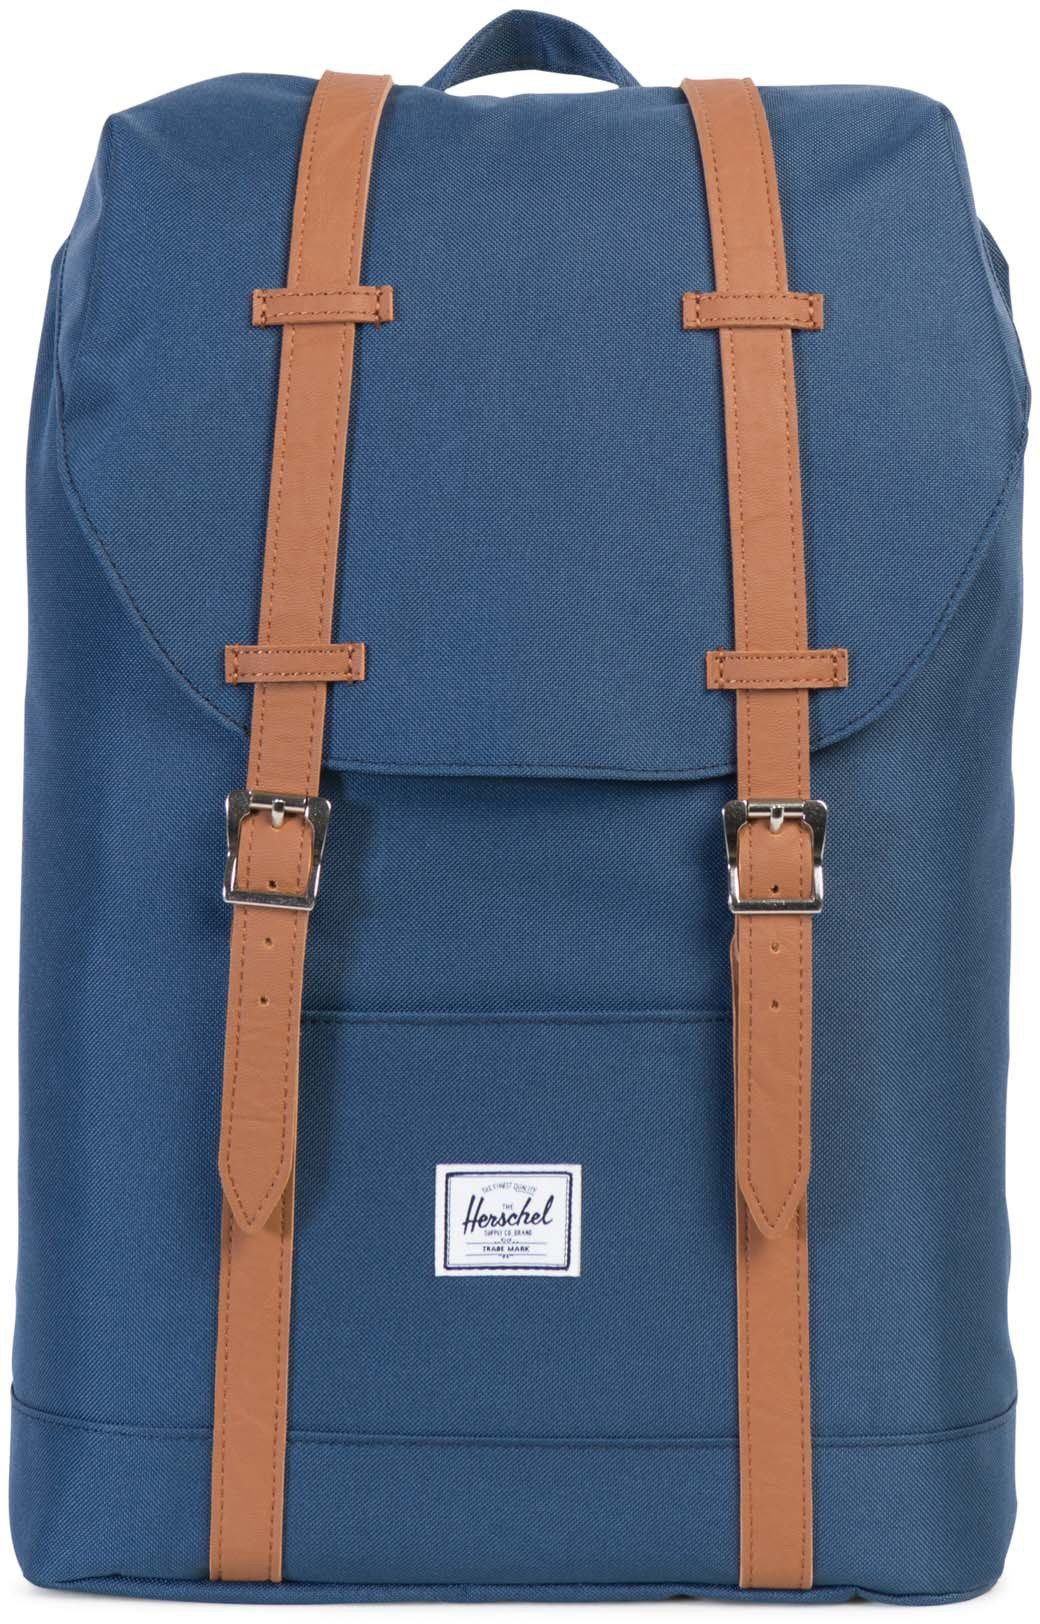 Herschel Rucksack mit Laptopfach, »Retreat Backpack, Navy, Mid Volume«